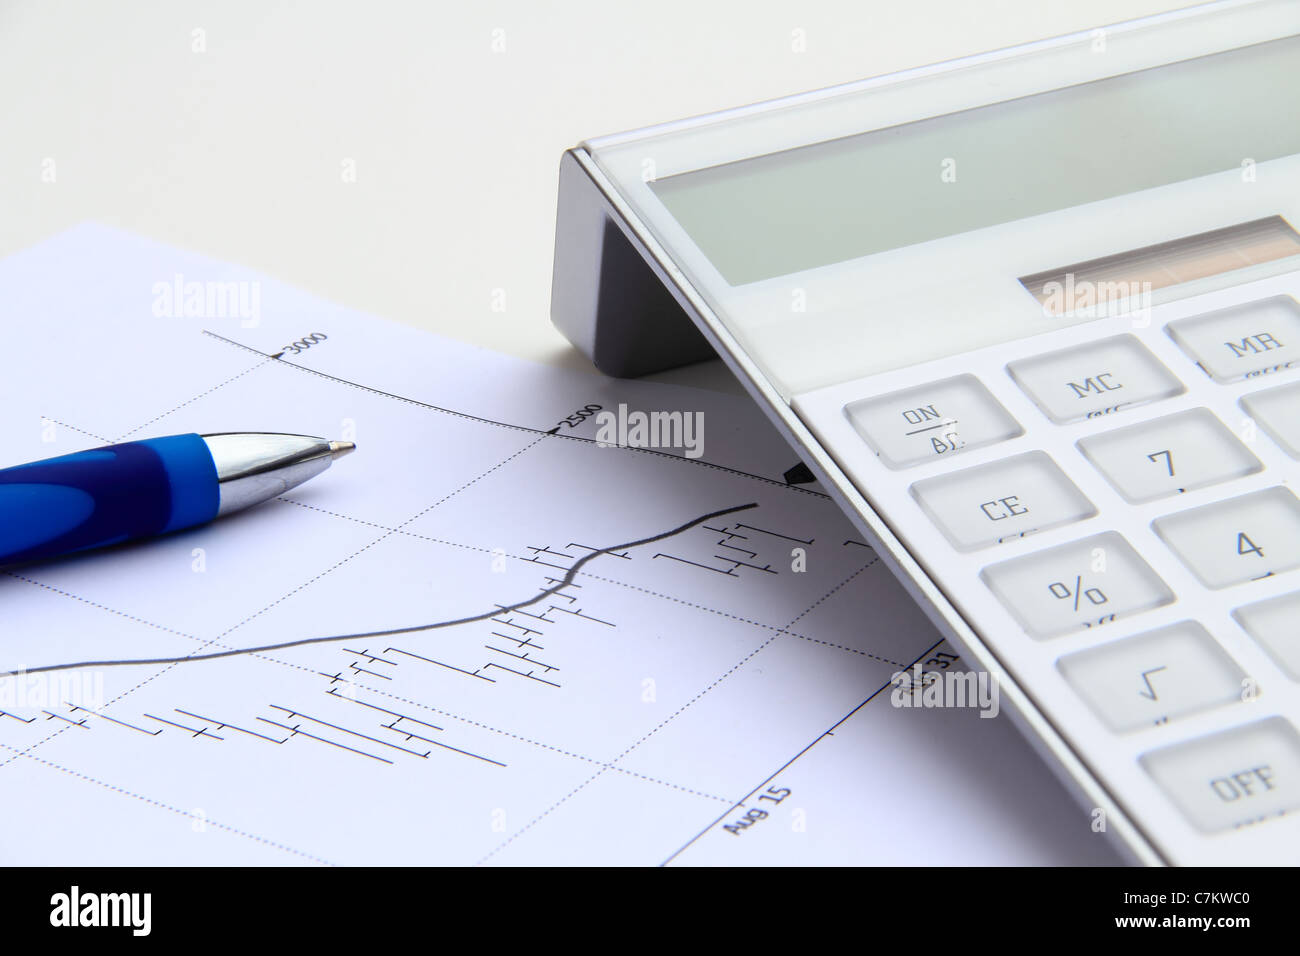 stock chart with solar power calculator and blue pen - Stock Image